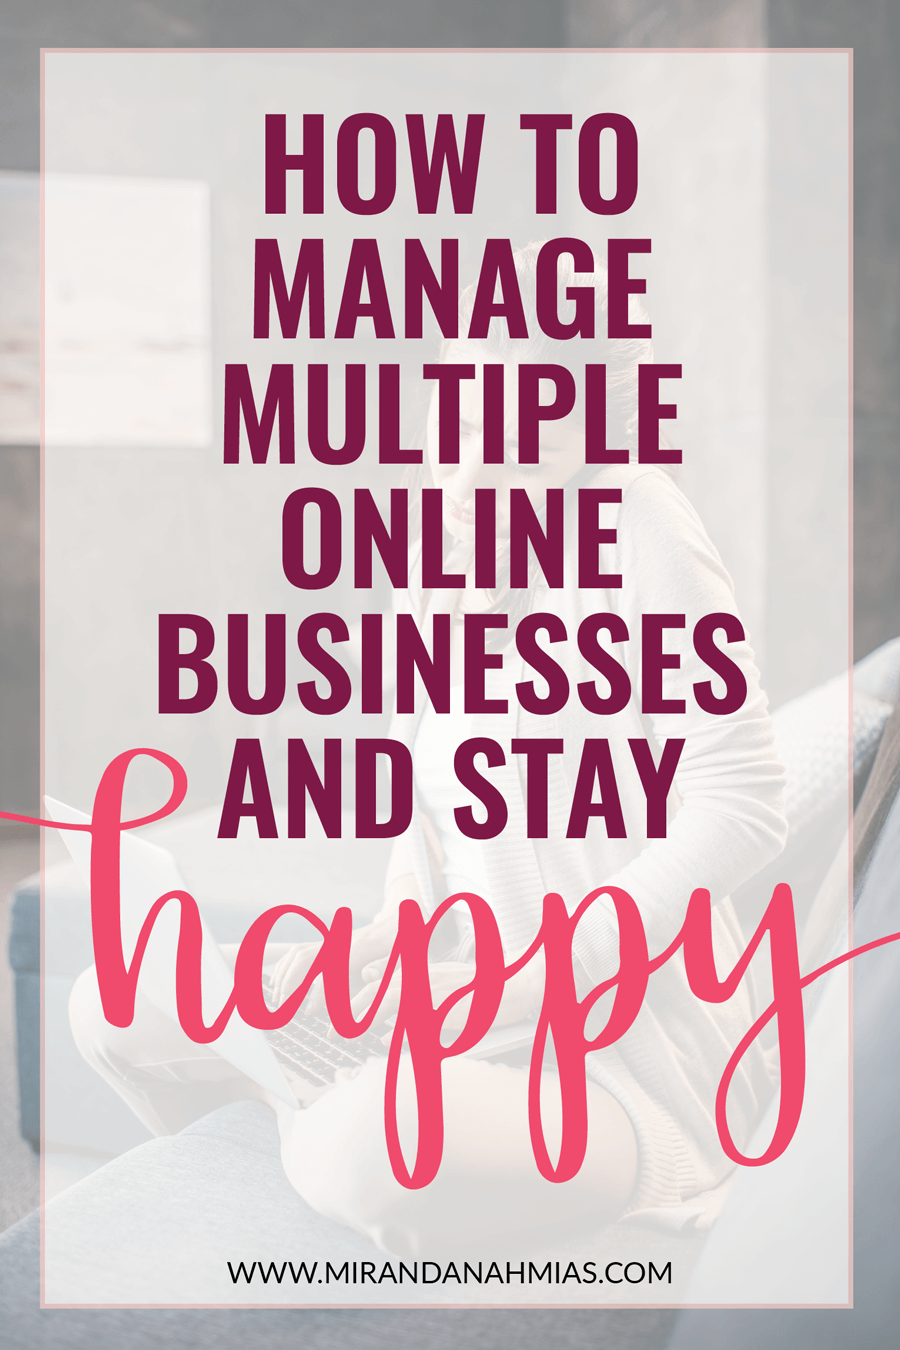 Serial Entrepreneur? Here's how to manage multiple online businesses and stay HAPPY | Miranda Nahmias & Co. Digital Marketing + Virtual Assistance